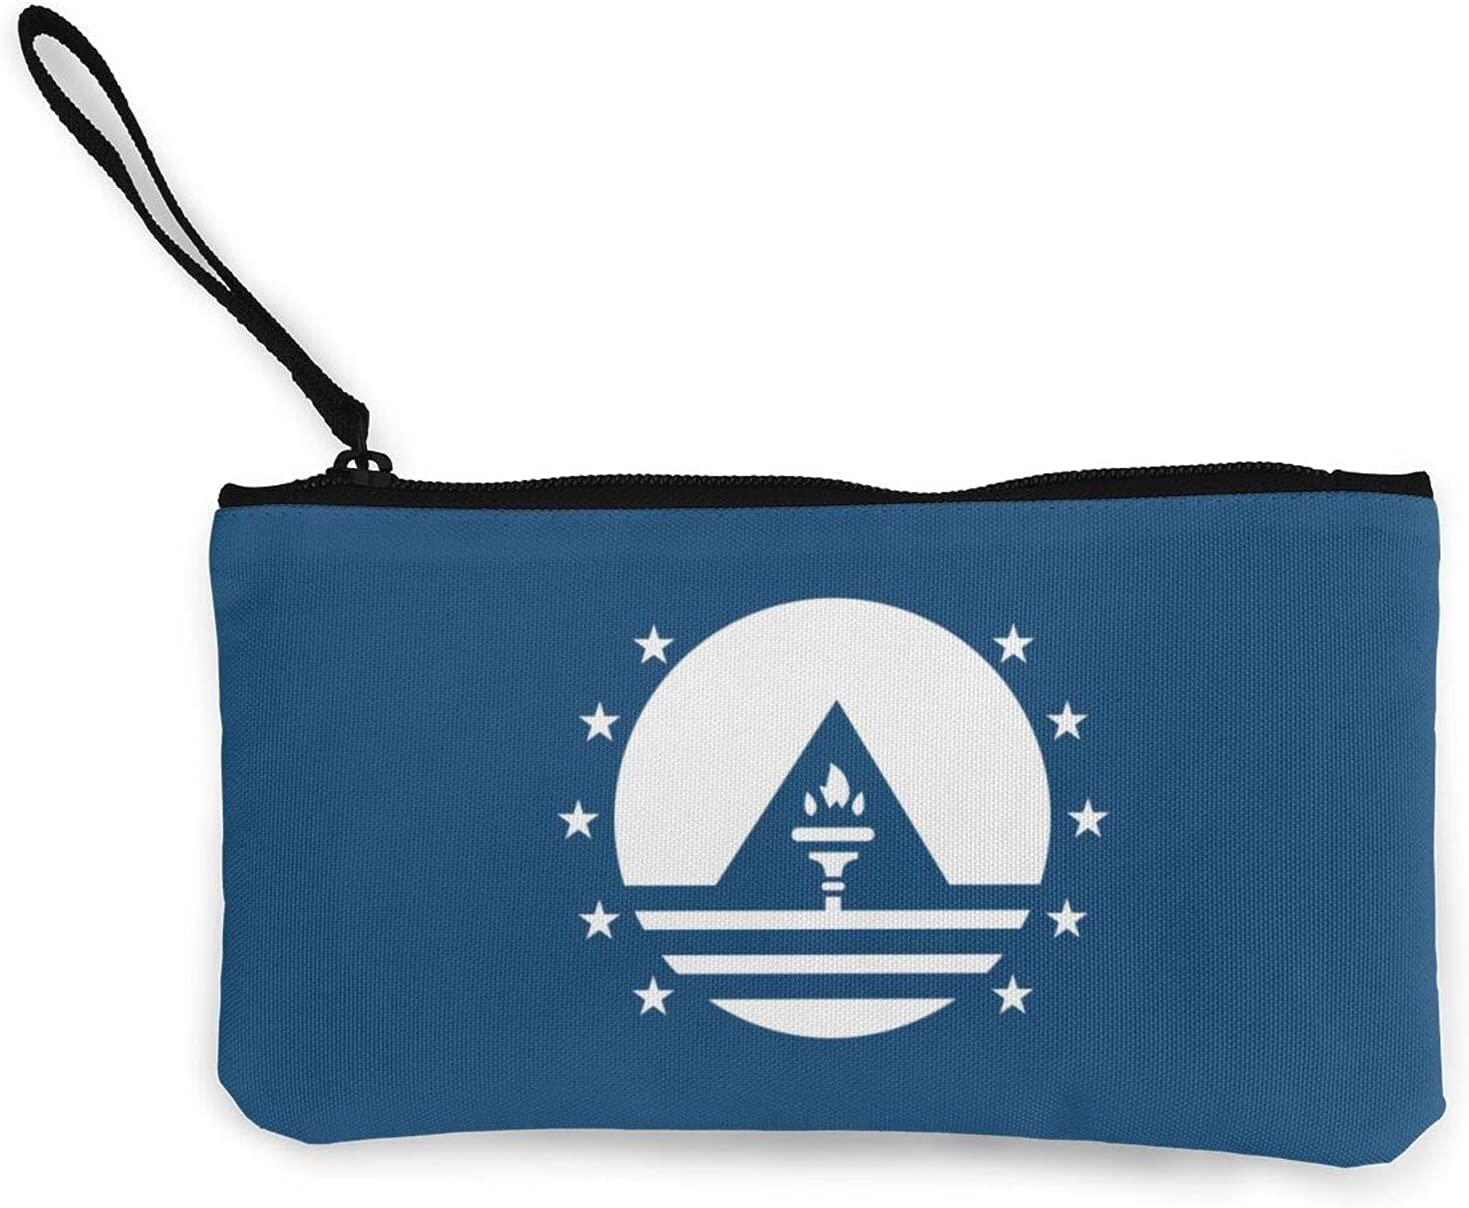 New Cape Verde Flag Multifunction Travel Toiletry Pouch Small Canvas Coin Wallet Bag Zipper